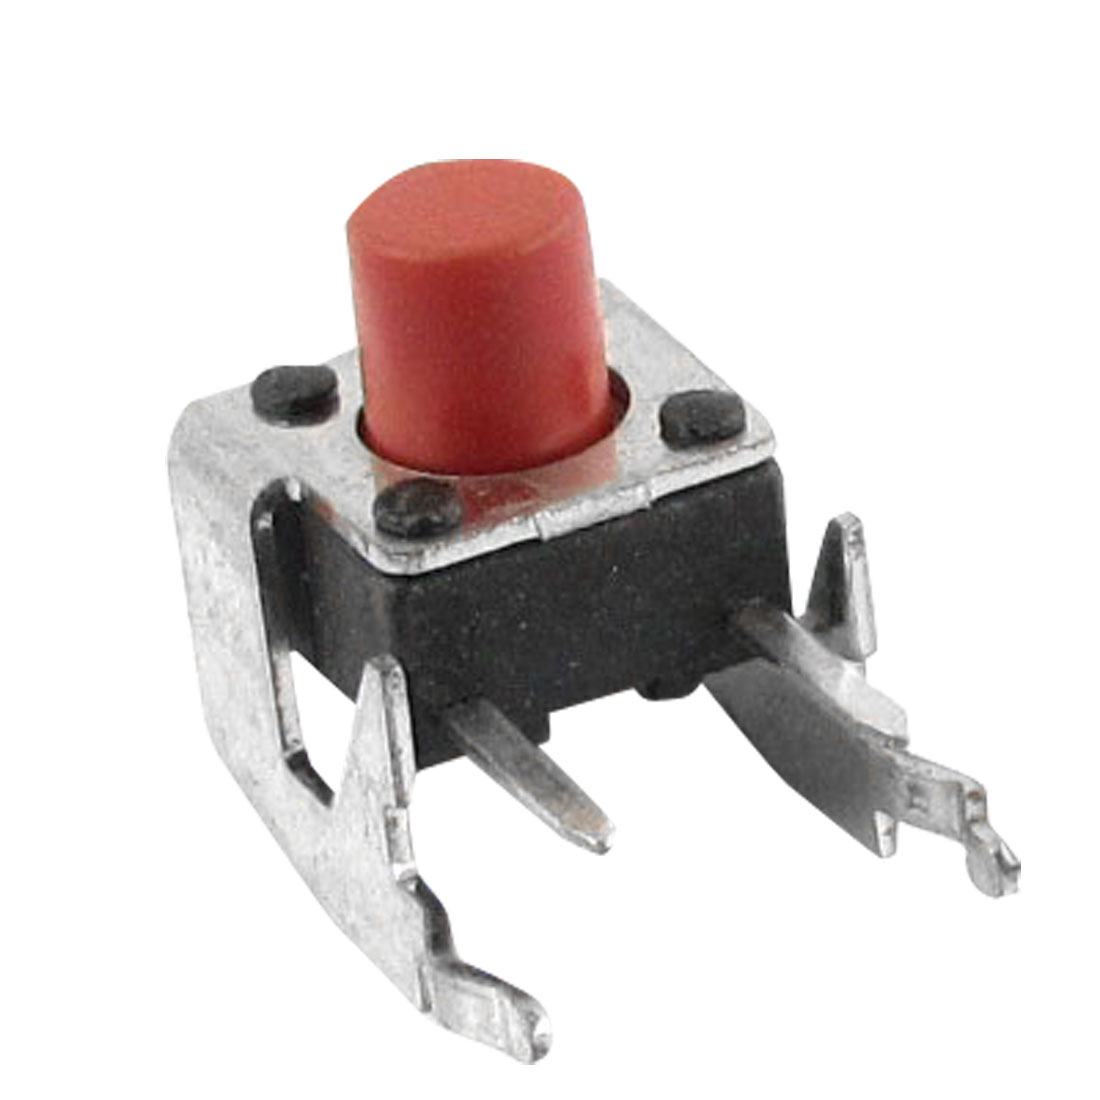 10 Pcs Momentary Right Angle Tactile Push Button Switches 6 x 6 x 7mm